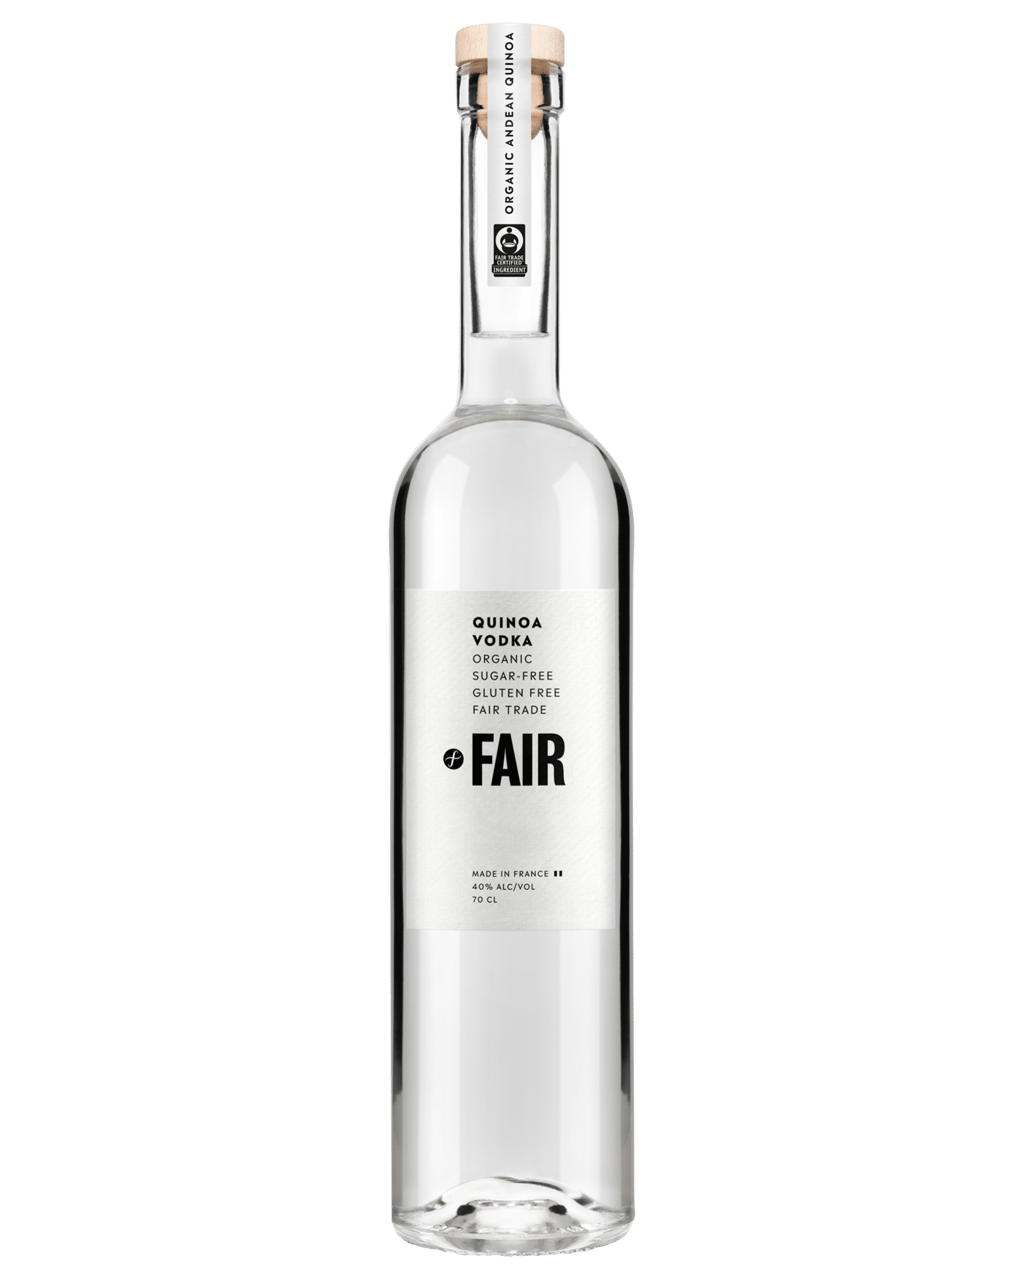 Buy Fair Quinoa Vodka 700mL | Dan Murphy's